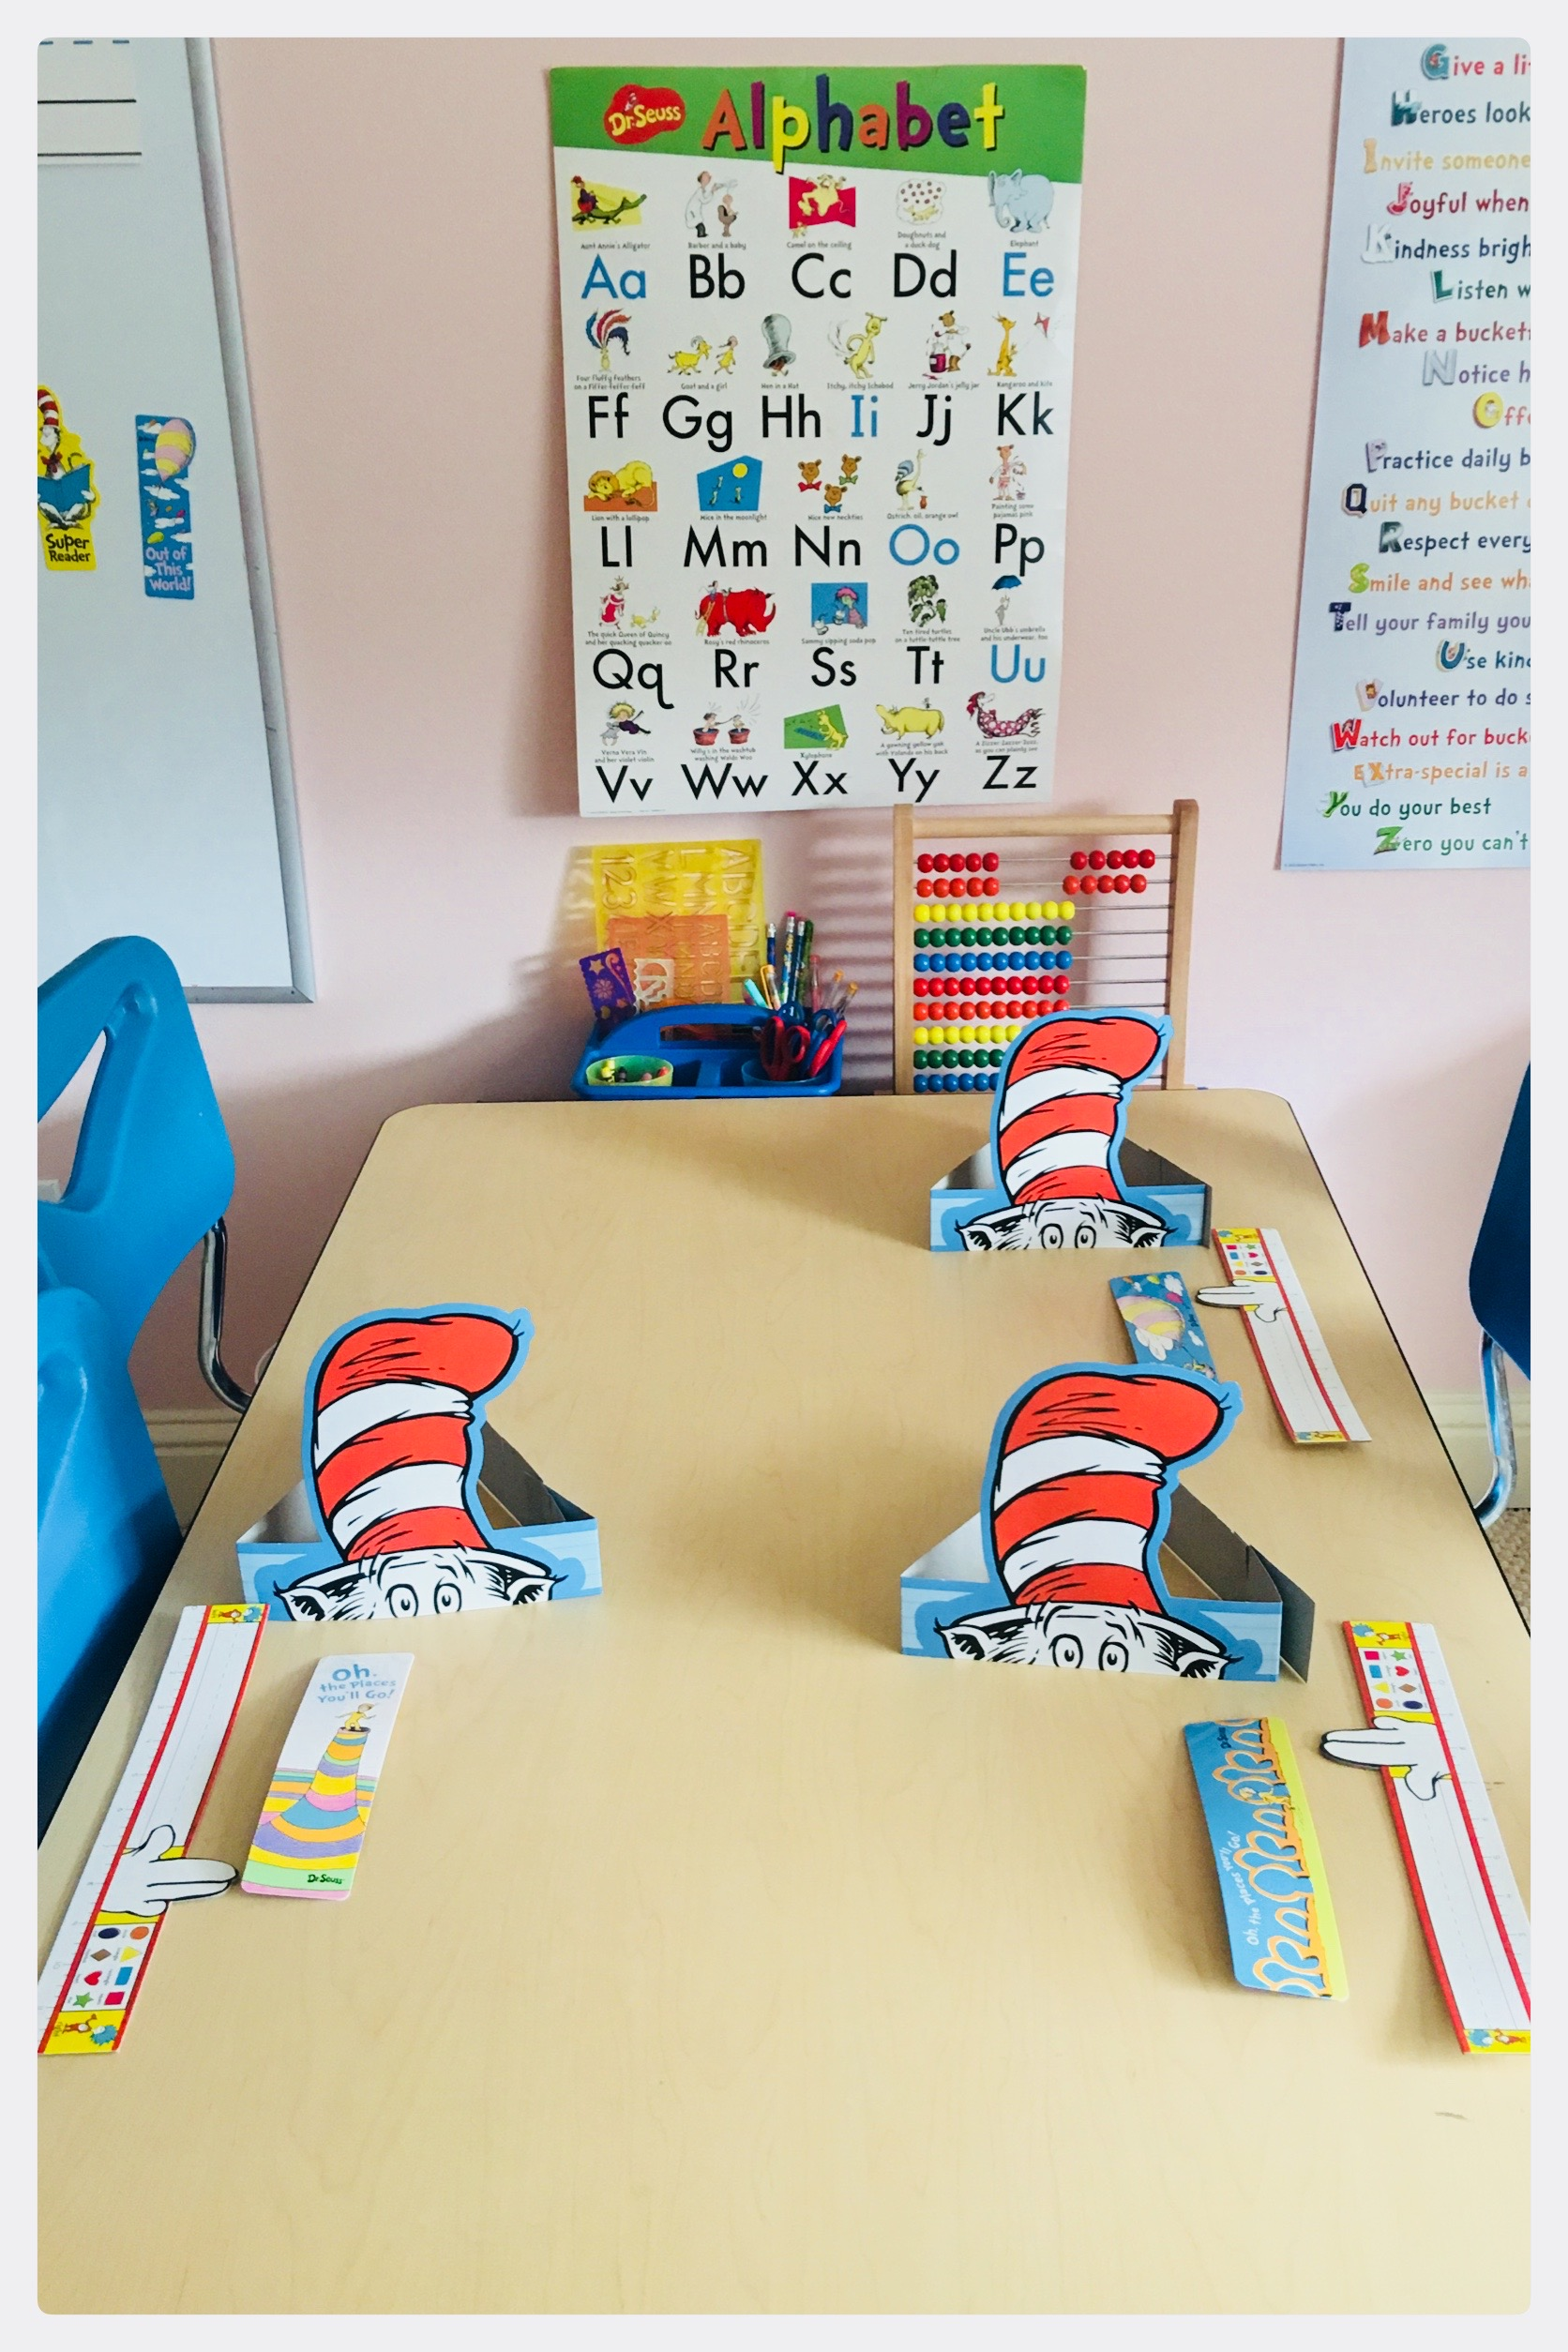 💙 The Cat In The Hat Sensory Bin ❤️ With Dr. Seuss's Birthday just around the corner and Read Across America Day quickly approaching, I thought I'd share some of our favorite Dr. Seuss Inspired play! 💙 Sensory bins, Cat in the Hat hats, name tags, playroom decor, etc